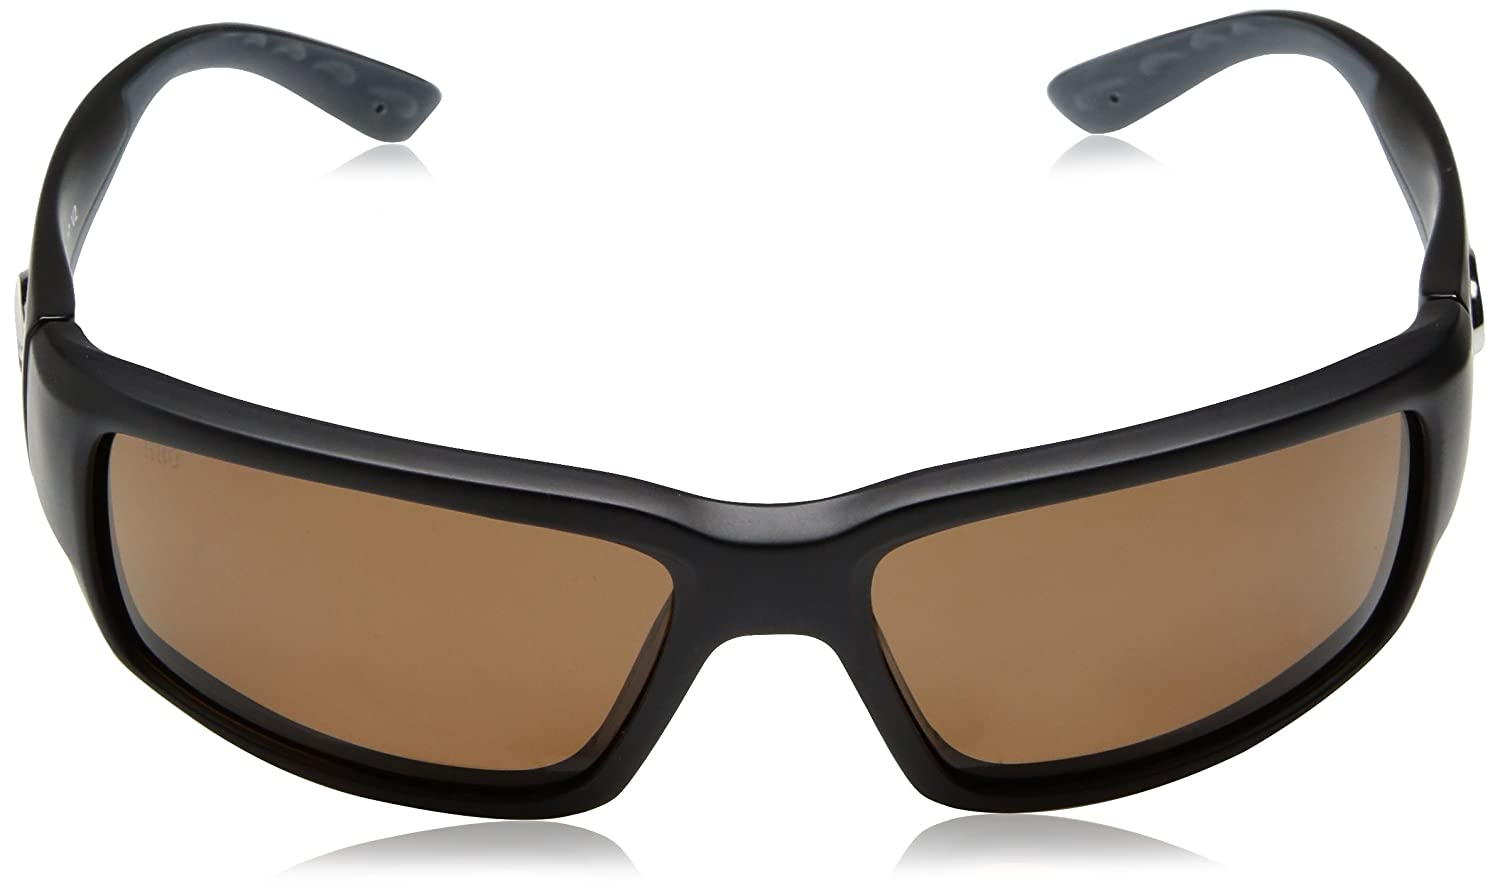 653c25e9200 Amazon.com  Costa Del Mar Blackfin Sunglasses  Sports   Outdoors